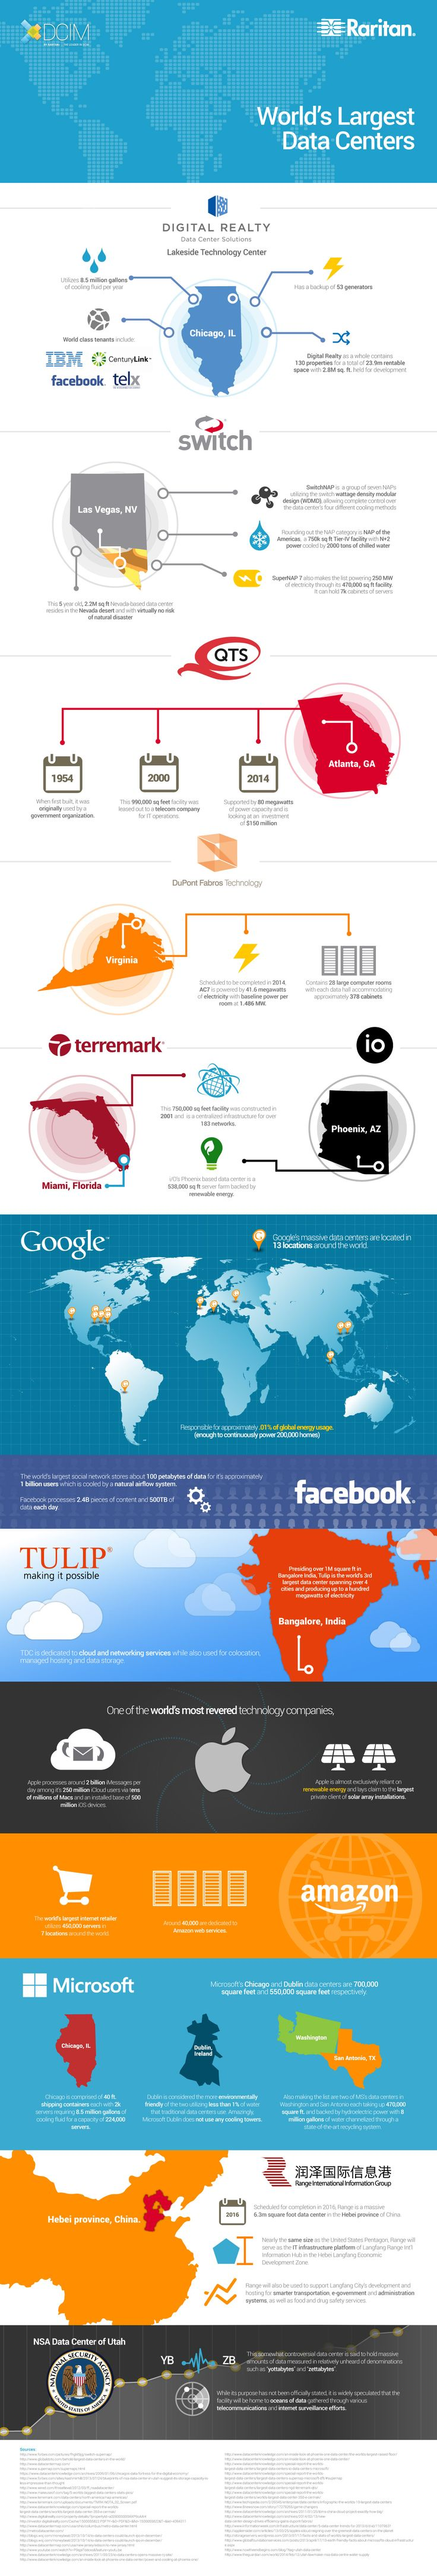 World's Largest Data Centers  #Infographic #DataCenter #Technology